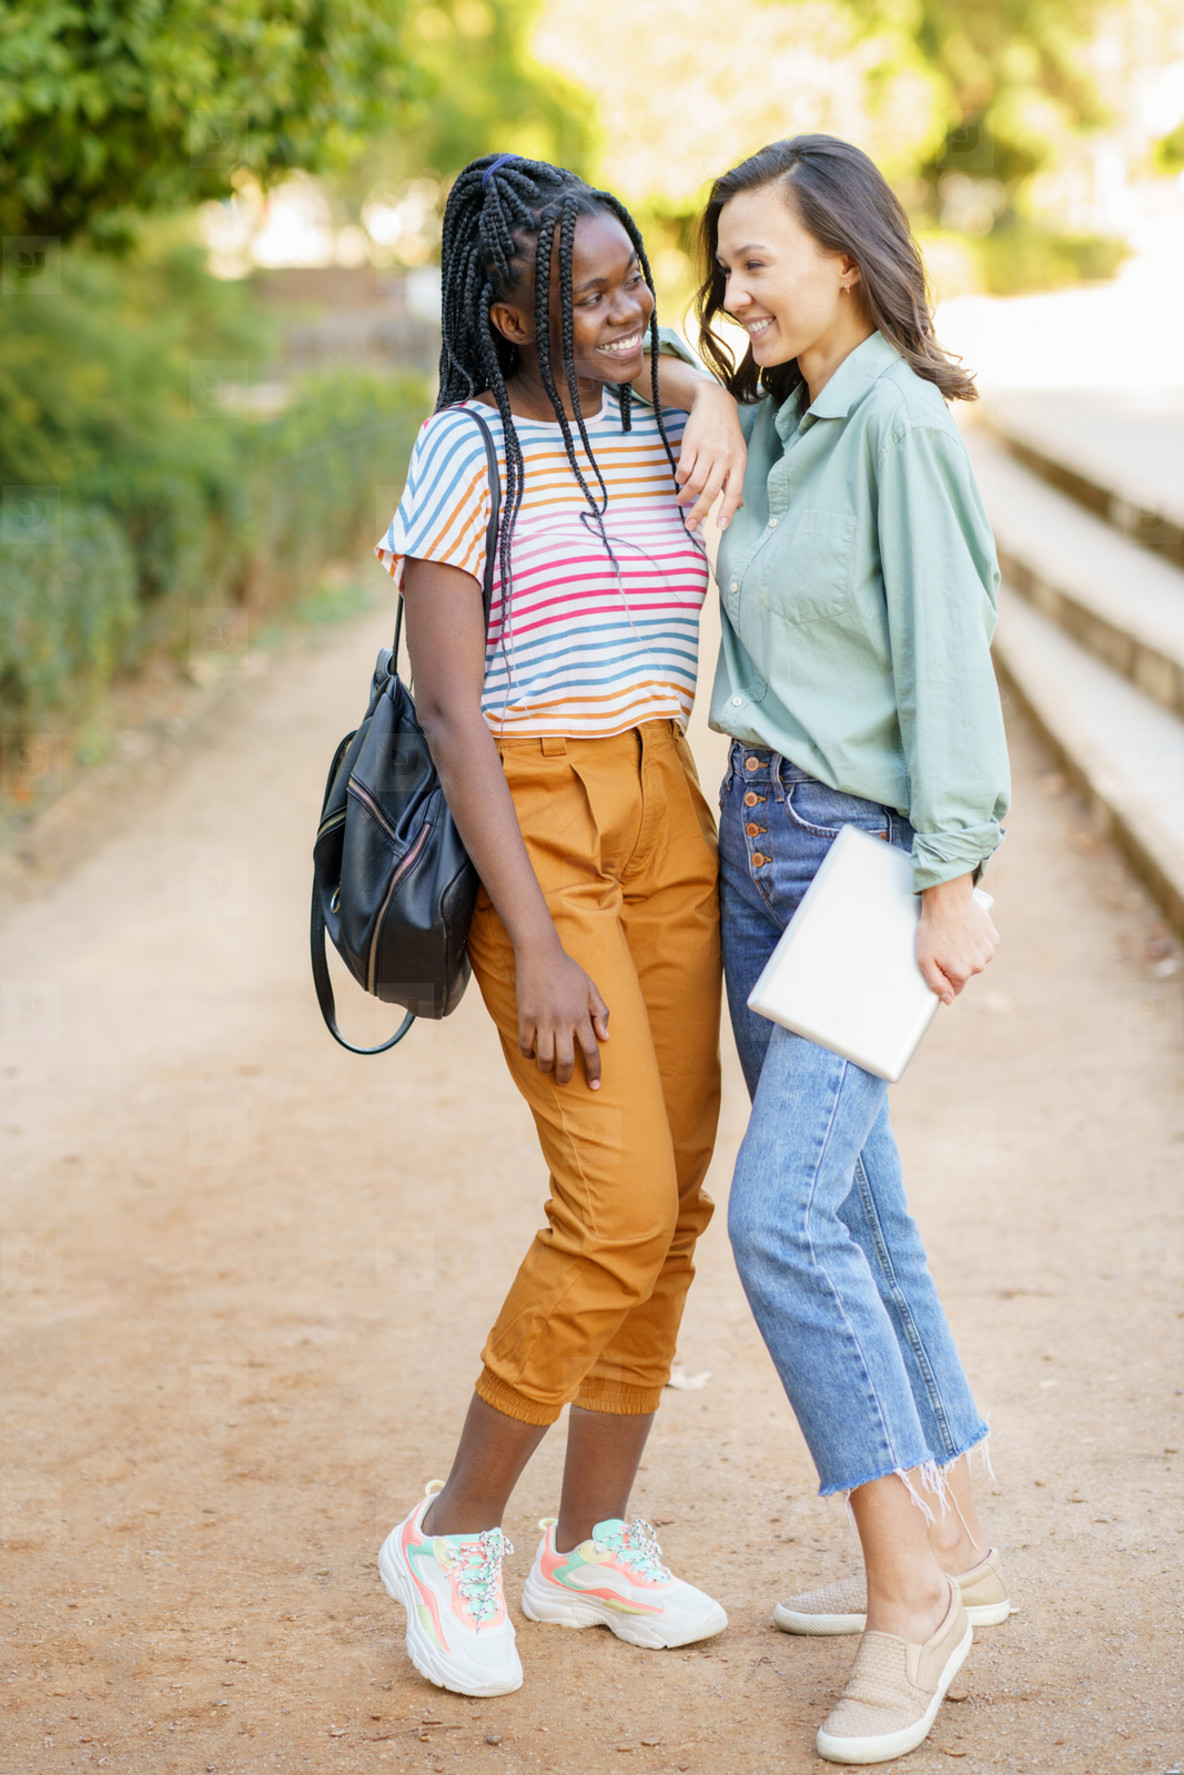 Two multiethnic girls posing together with colorful casual clothing